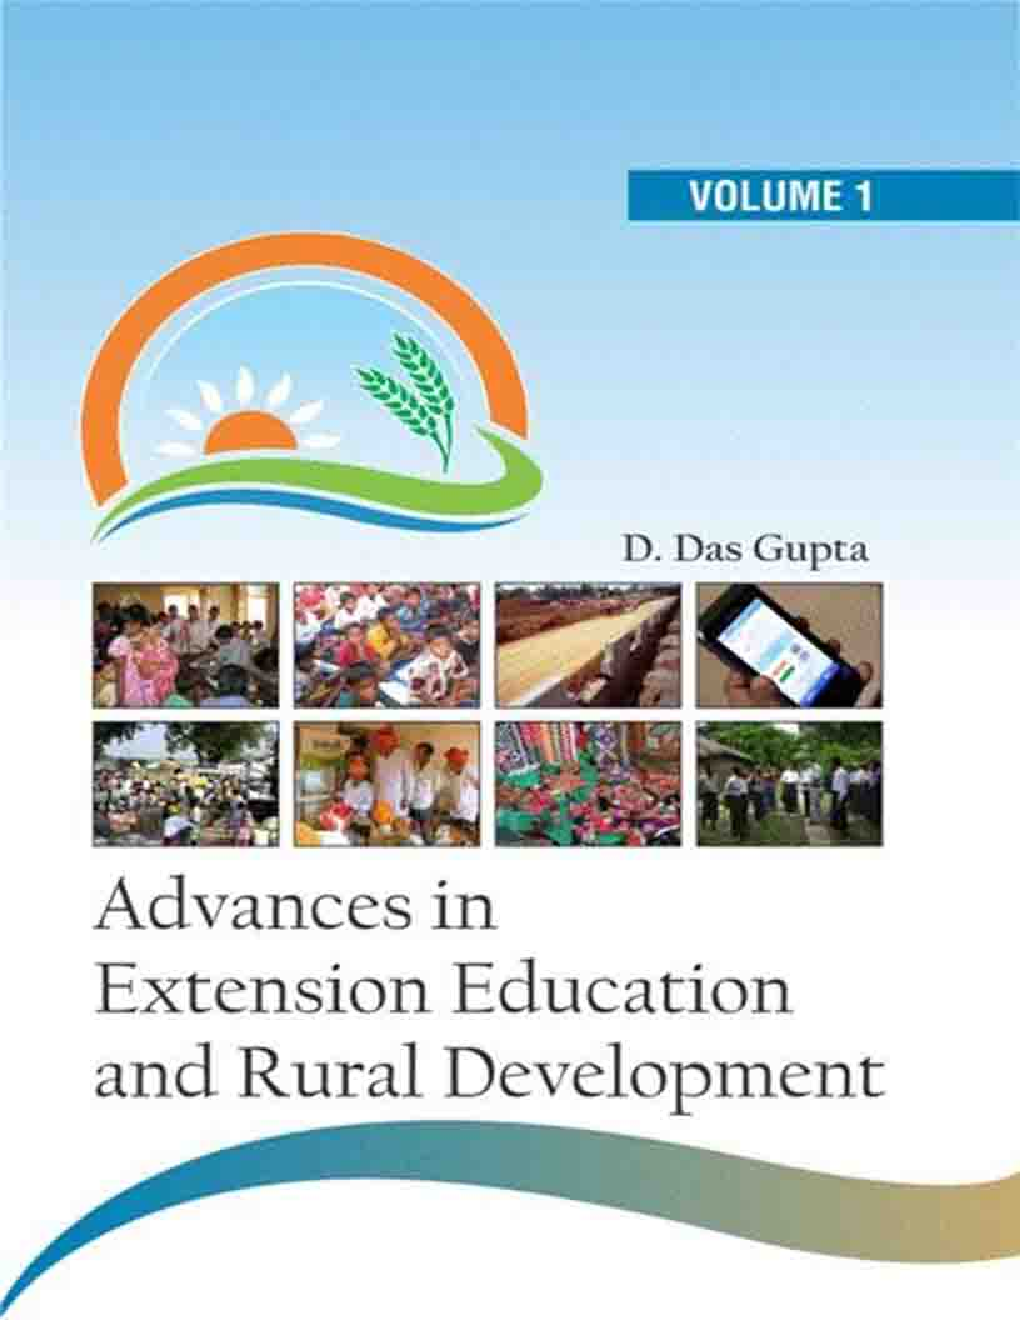 Advances in Extension Education and Rural Development Volume 1 - Page 1